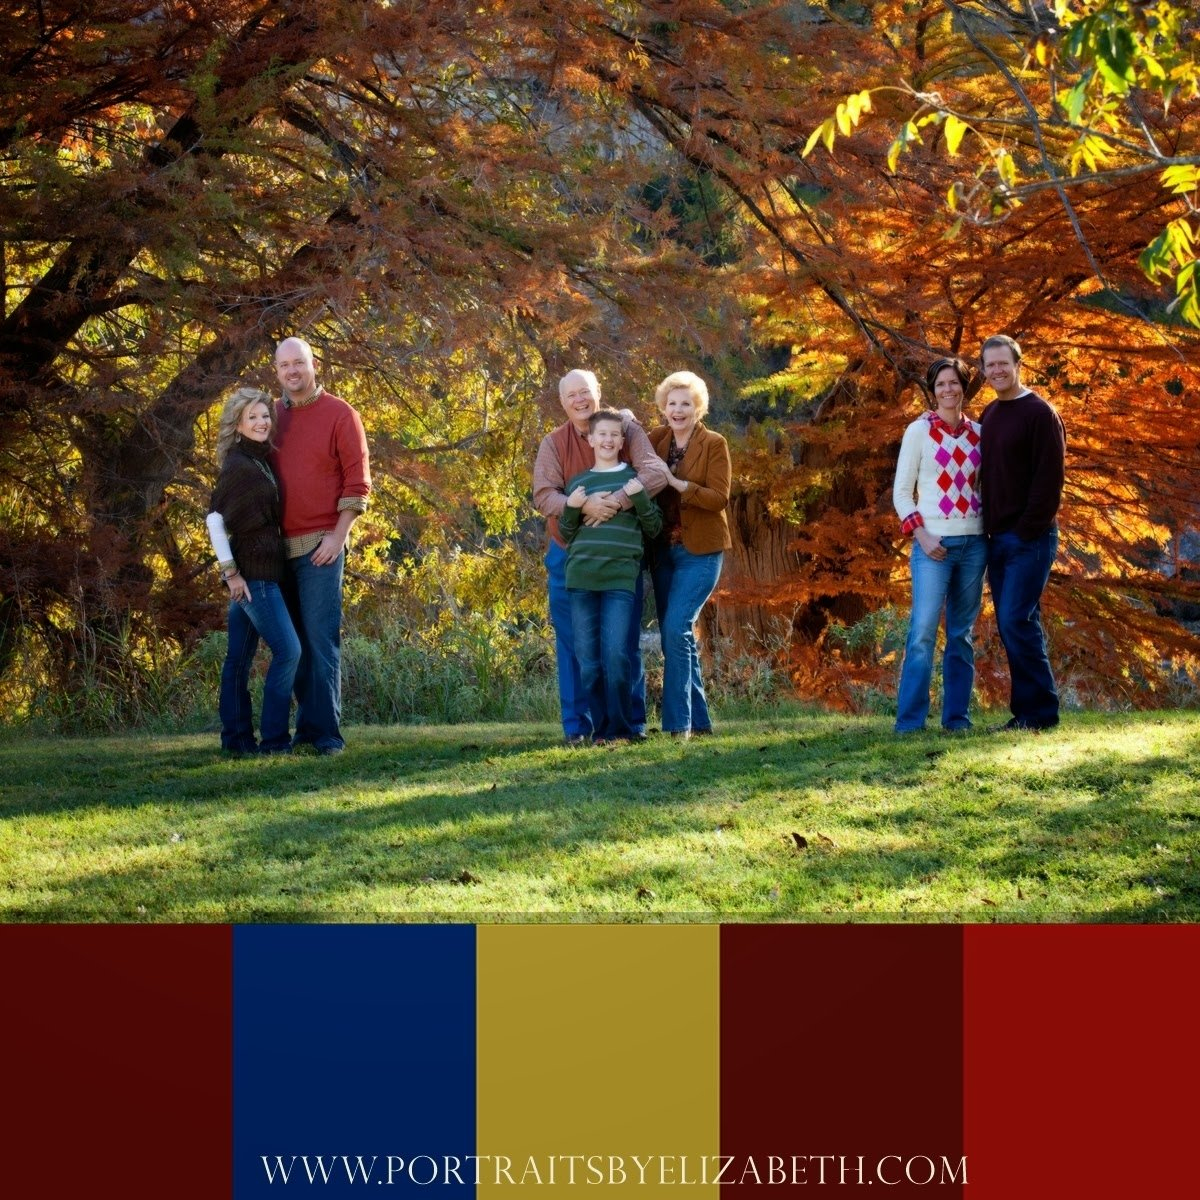 10 Lovely Fall Family Picture Ideas Clothing the artistry of elizabeth homan fall family portrait clothing ideas 2020